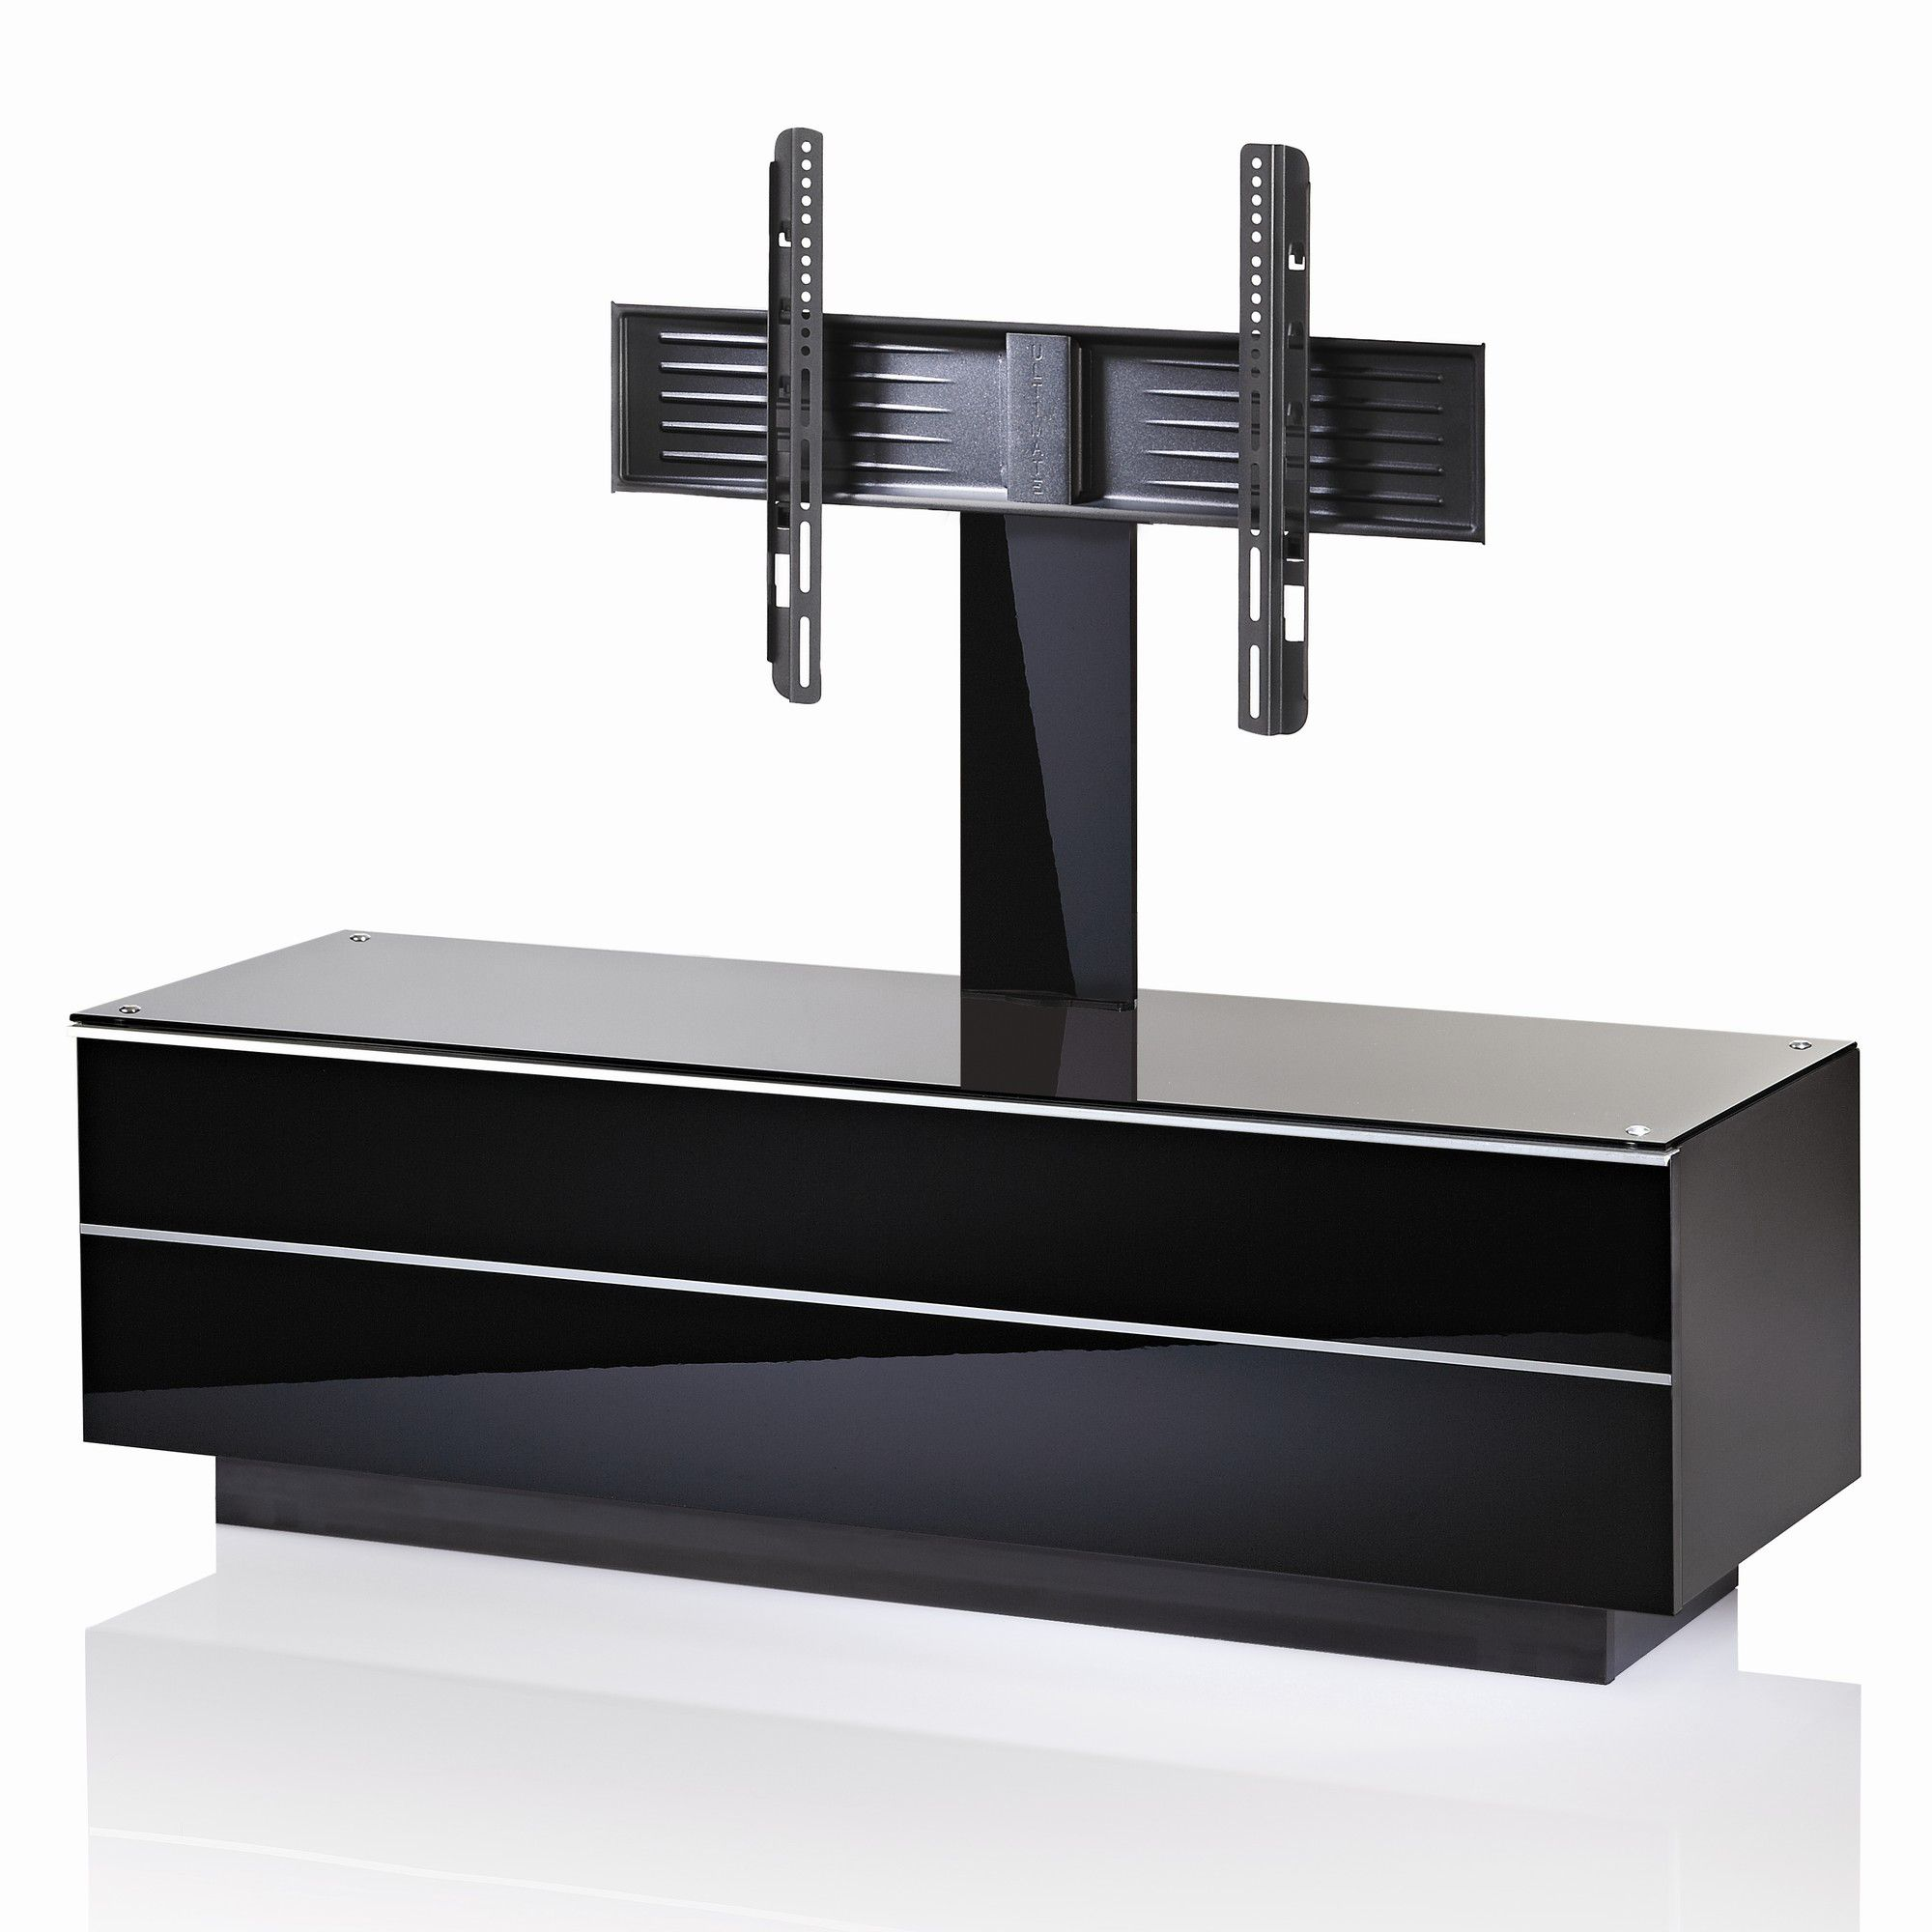 UK-CF G Series GS TV Stand - Black - 135cm at Tesco Direct